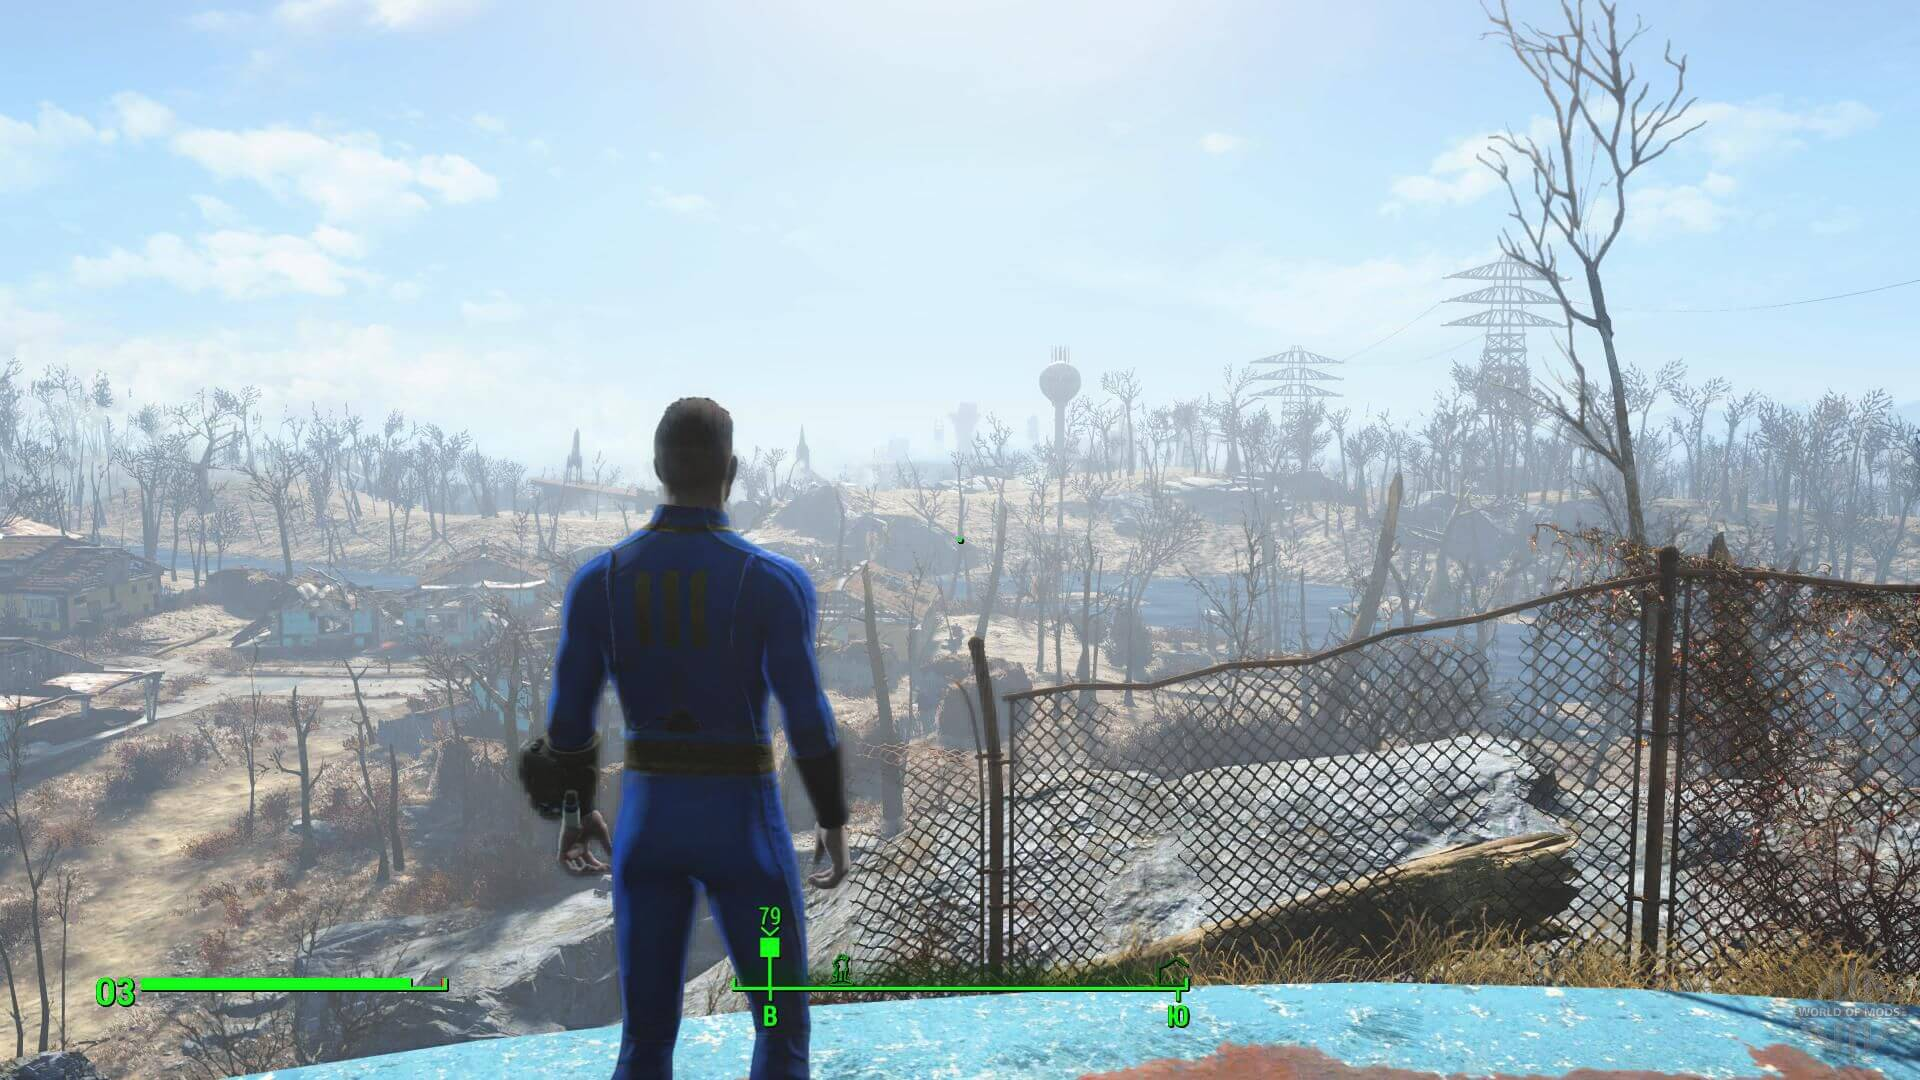 Leaving Fallout 4s Vault In Third Person Is Hilarious 181870 Fallout4 2015 11 11 15 14 27 78